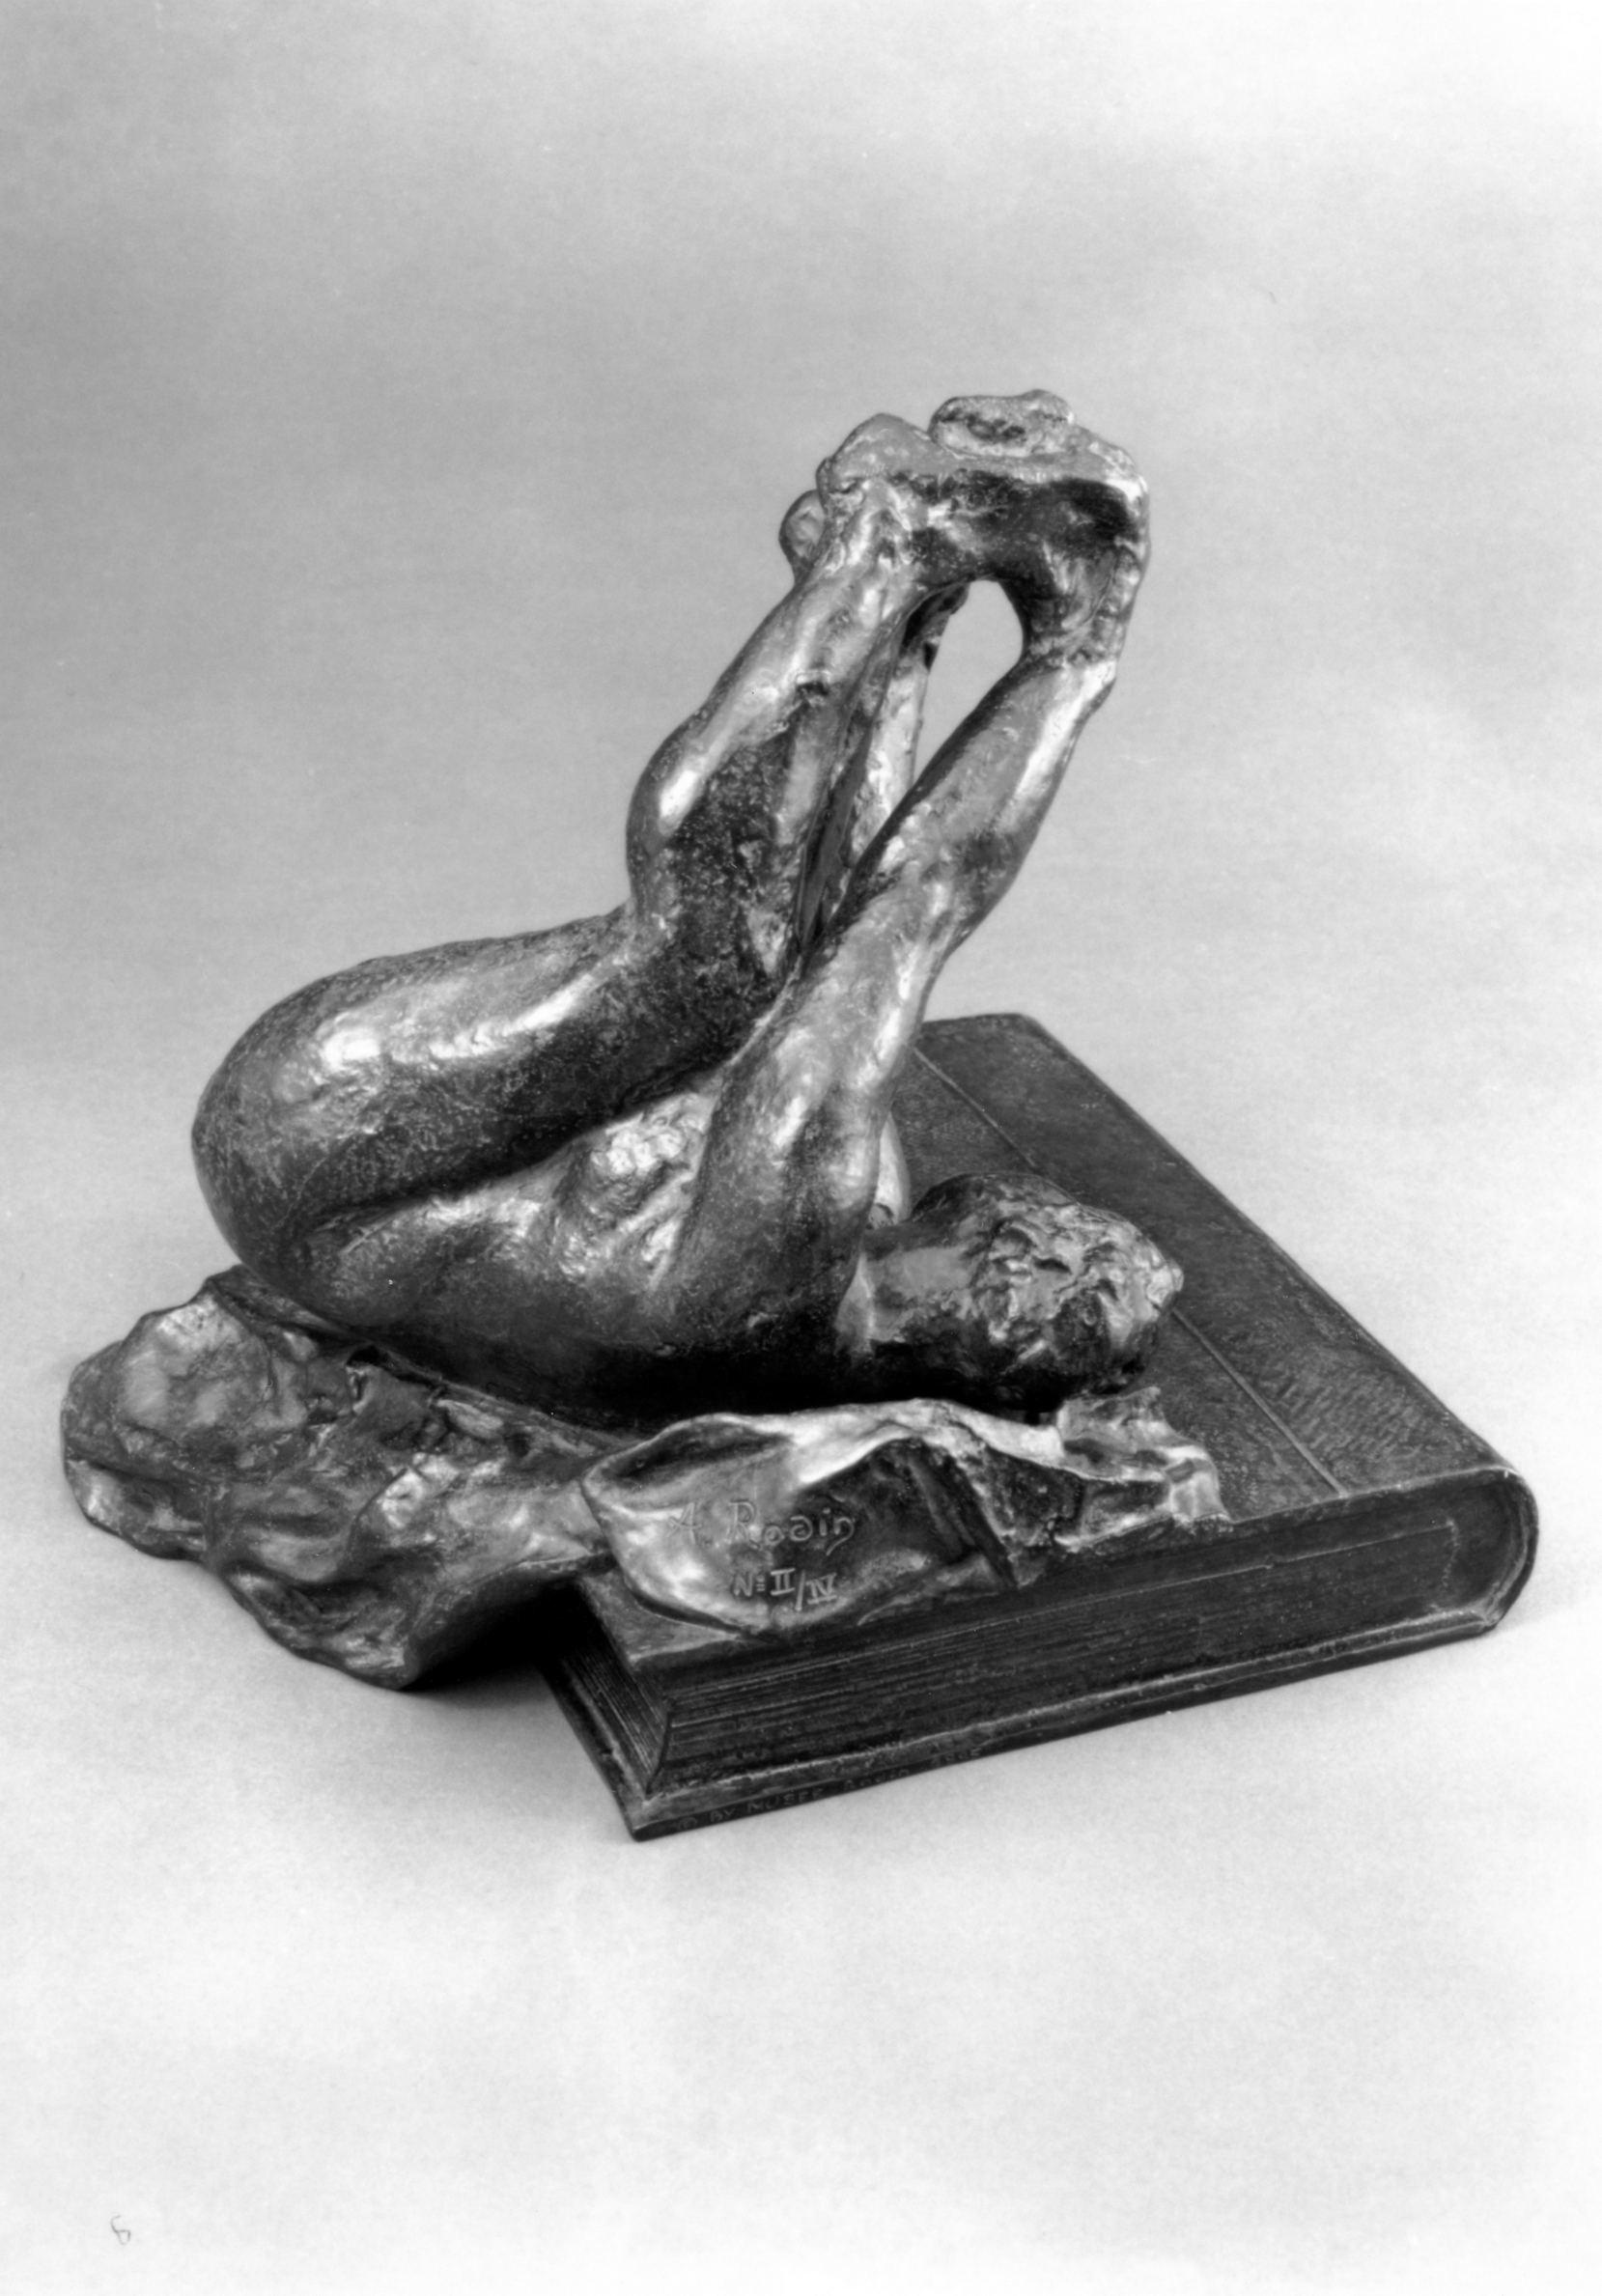 Auguste Rodin, Ecclesiastes modeled 1898; Musée Rodin cast II/IV, 1995 Bronze; Godard Foundry Lent by the Iris & B. Gerald Cantor Foundation